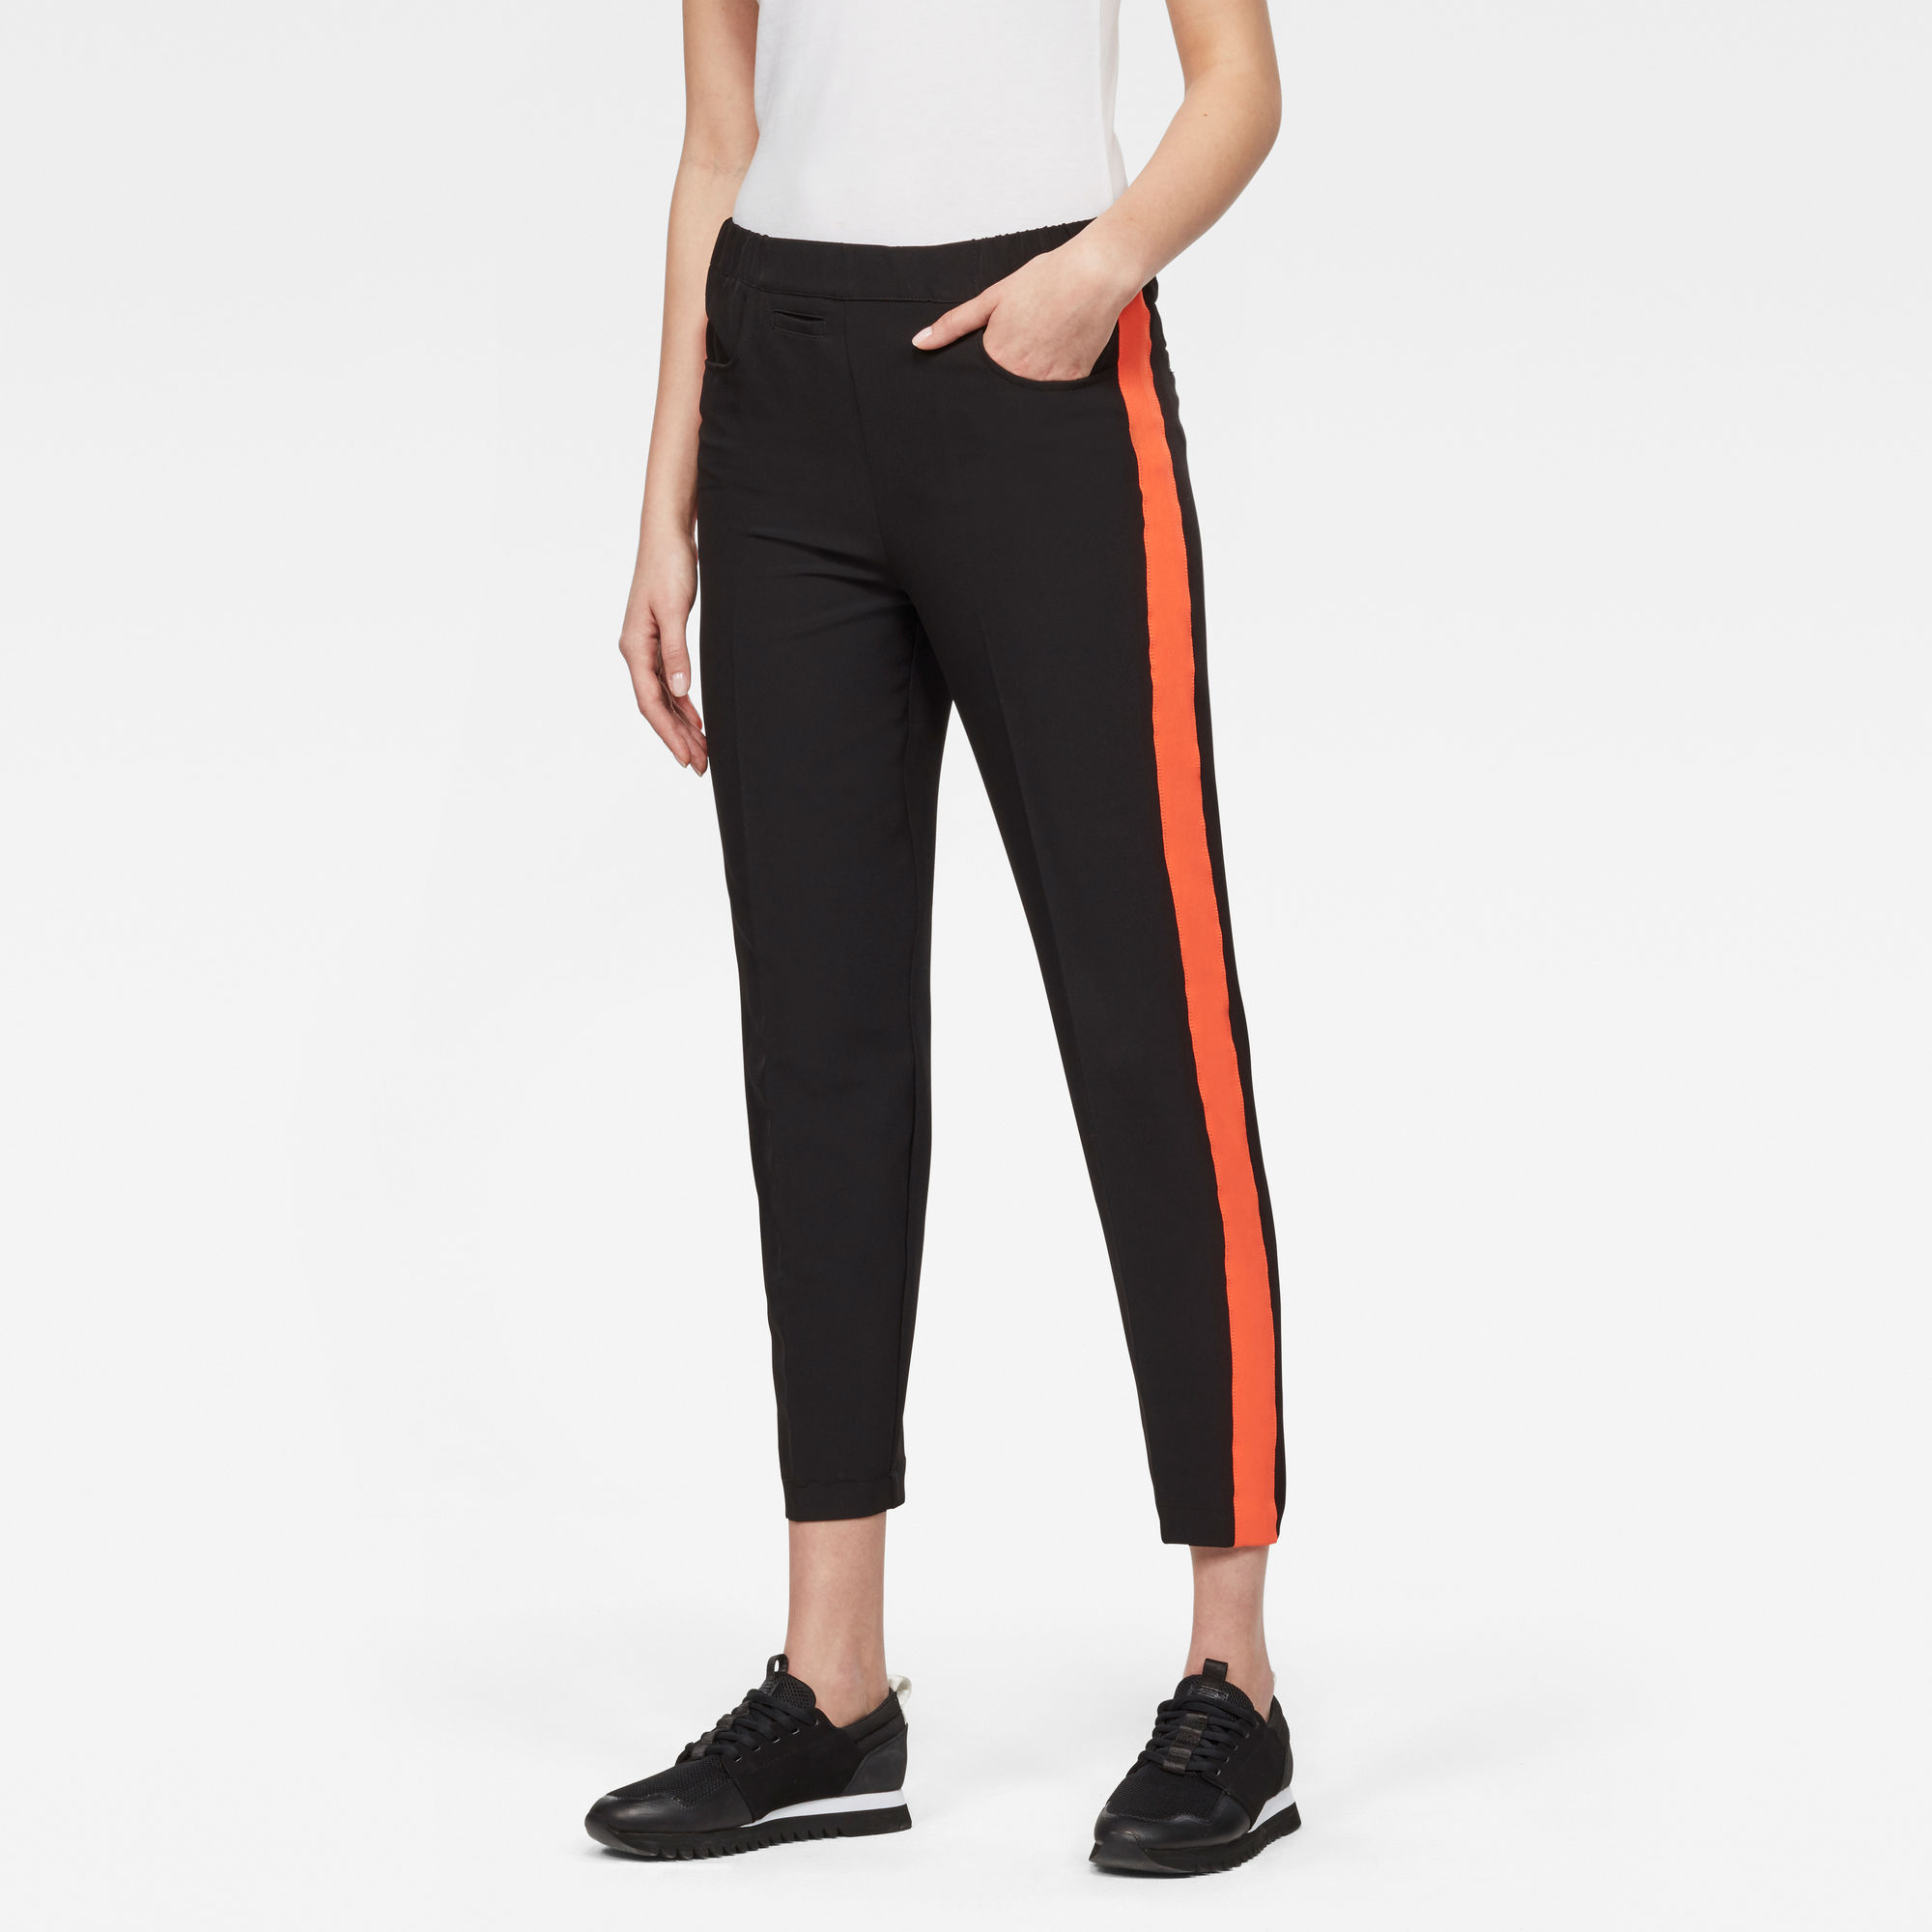 Image of G Star Raw D-staq High-Waist Skinny Pull On Pants